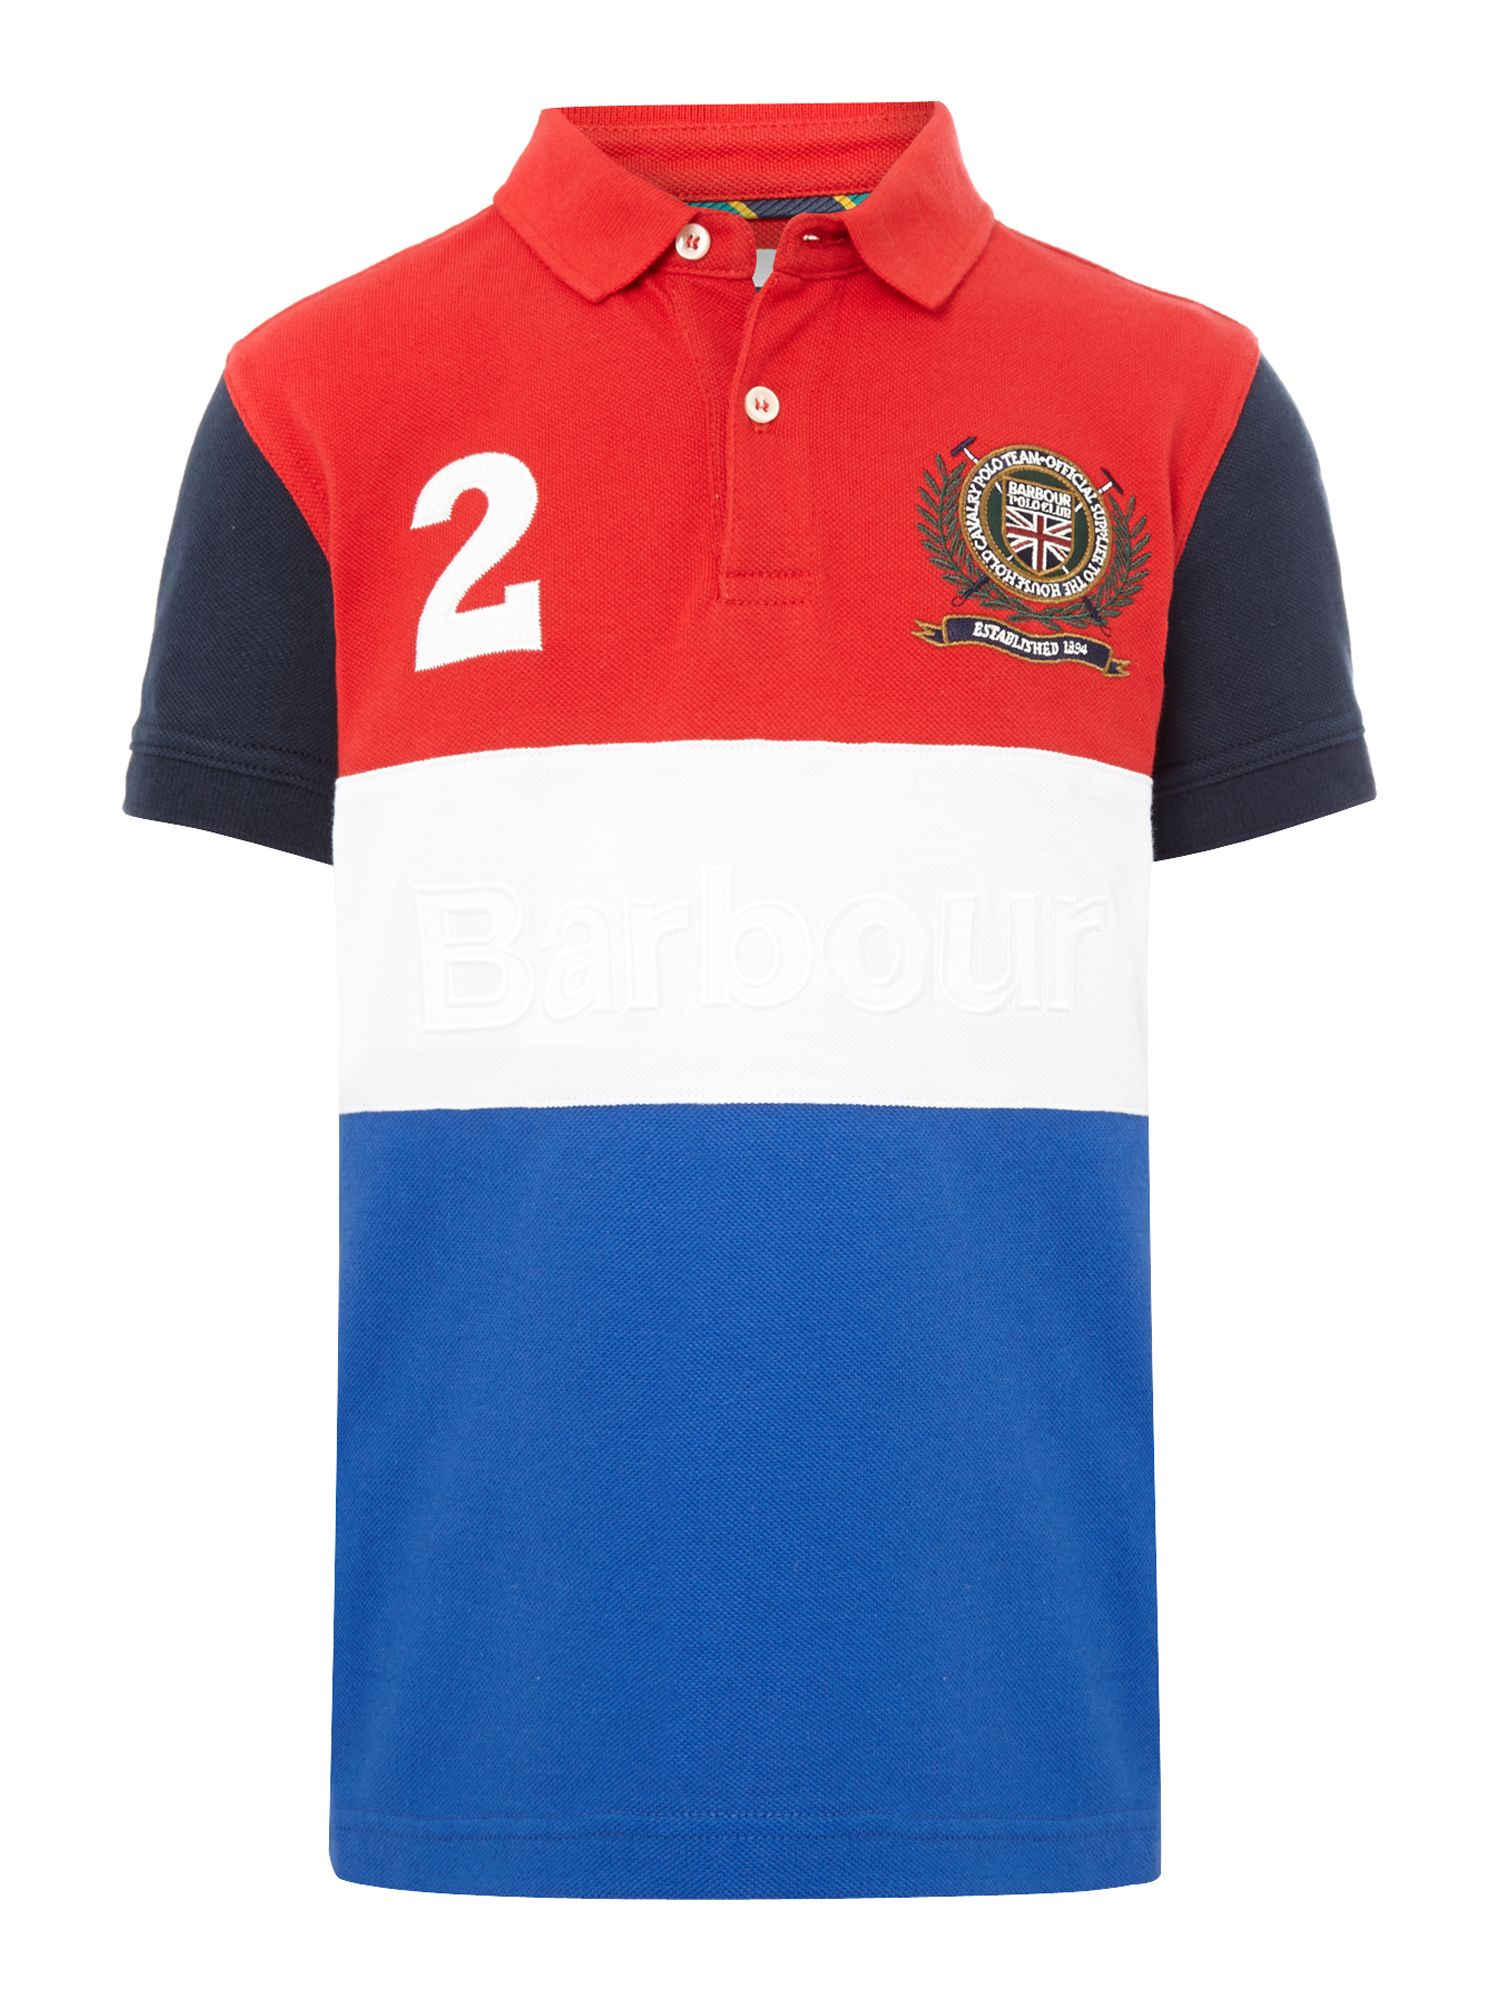 Boys block panel polo shirt with crest